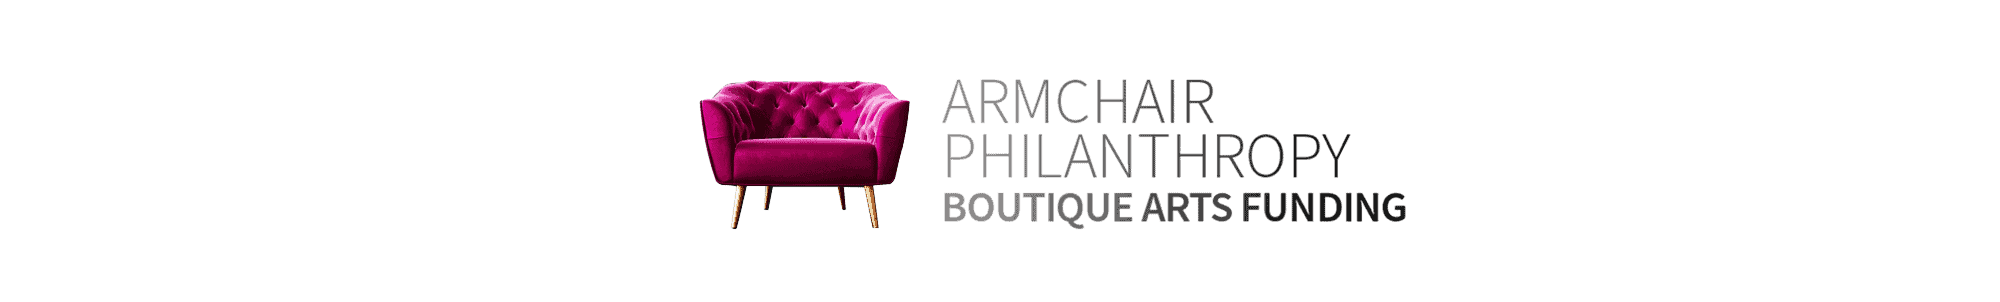 Armchair Philanthropy - Boutique Arts Funding